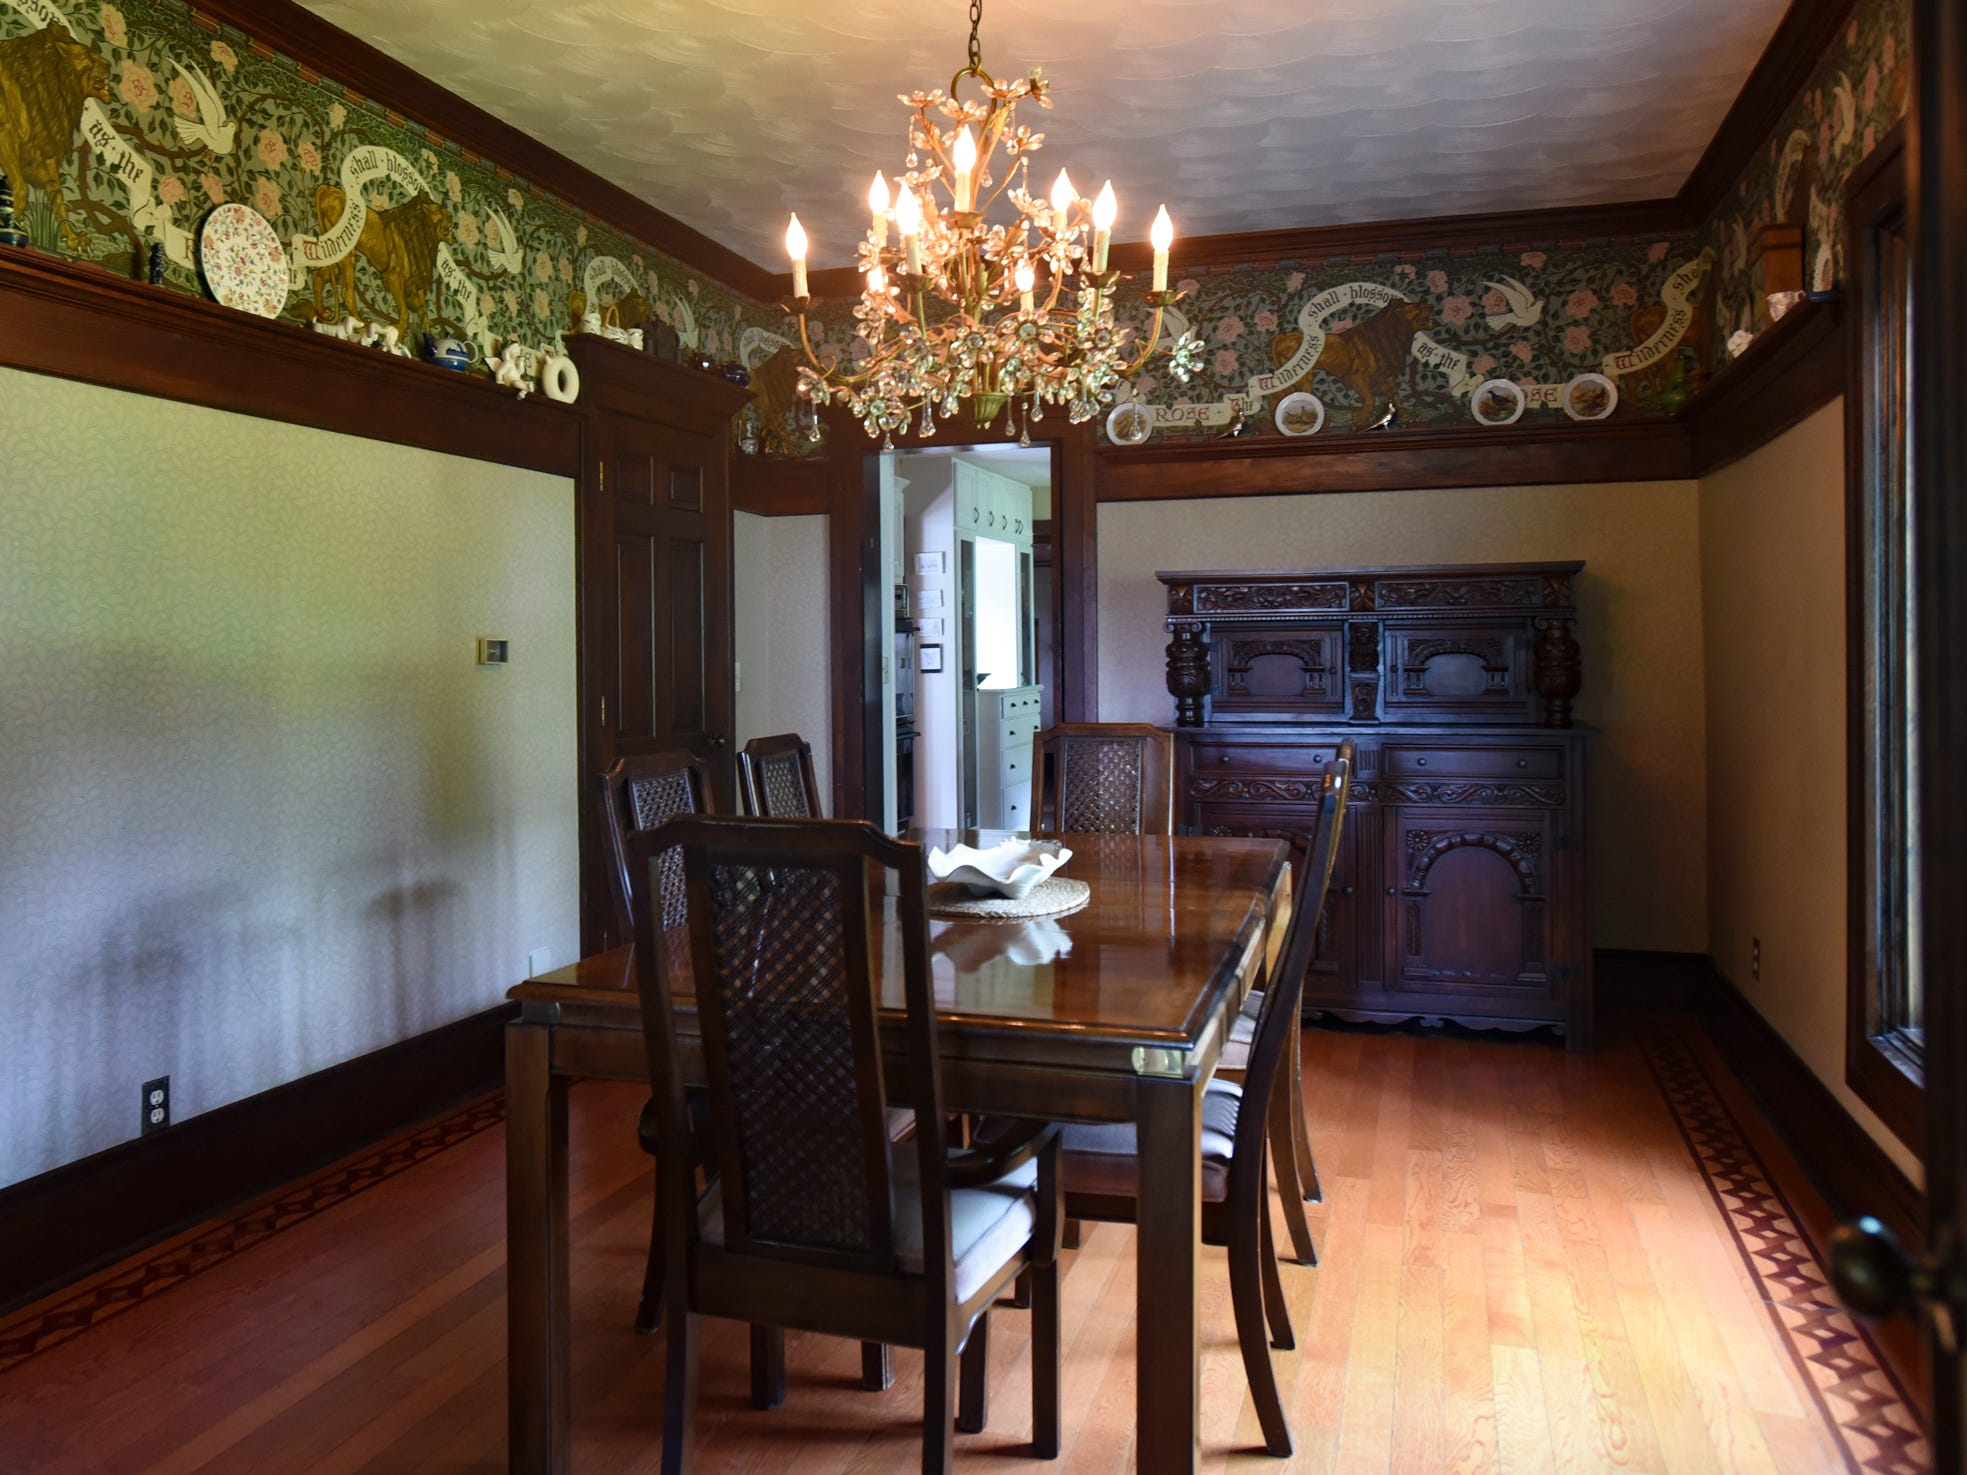 The dining room in the historic Shaft homestead in Shaftsburg.  The five bedroom farmhouse  was built in 1846.